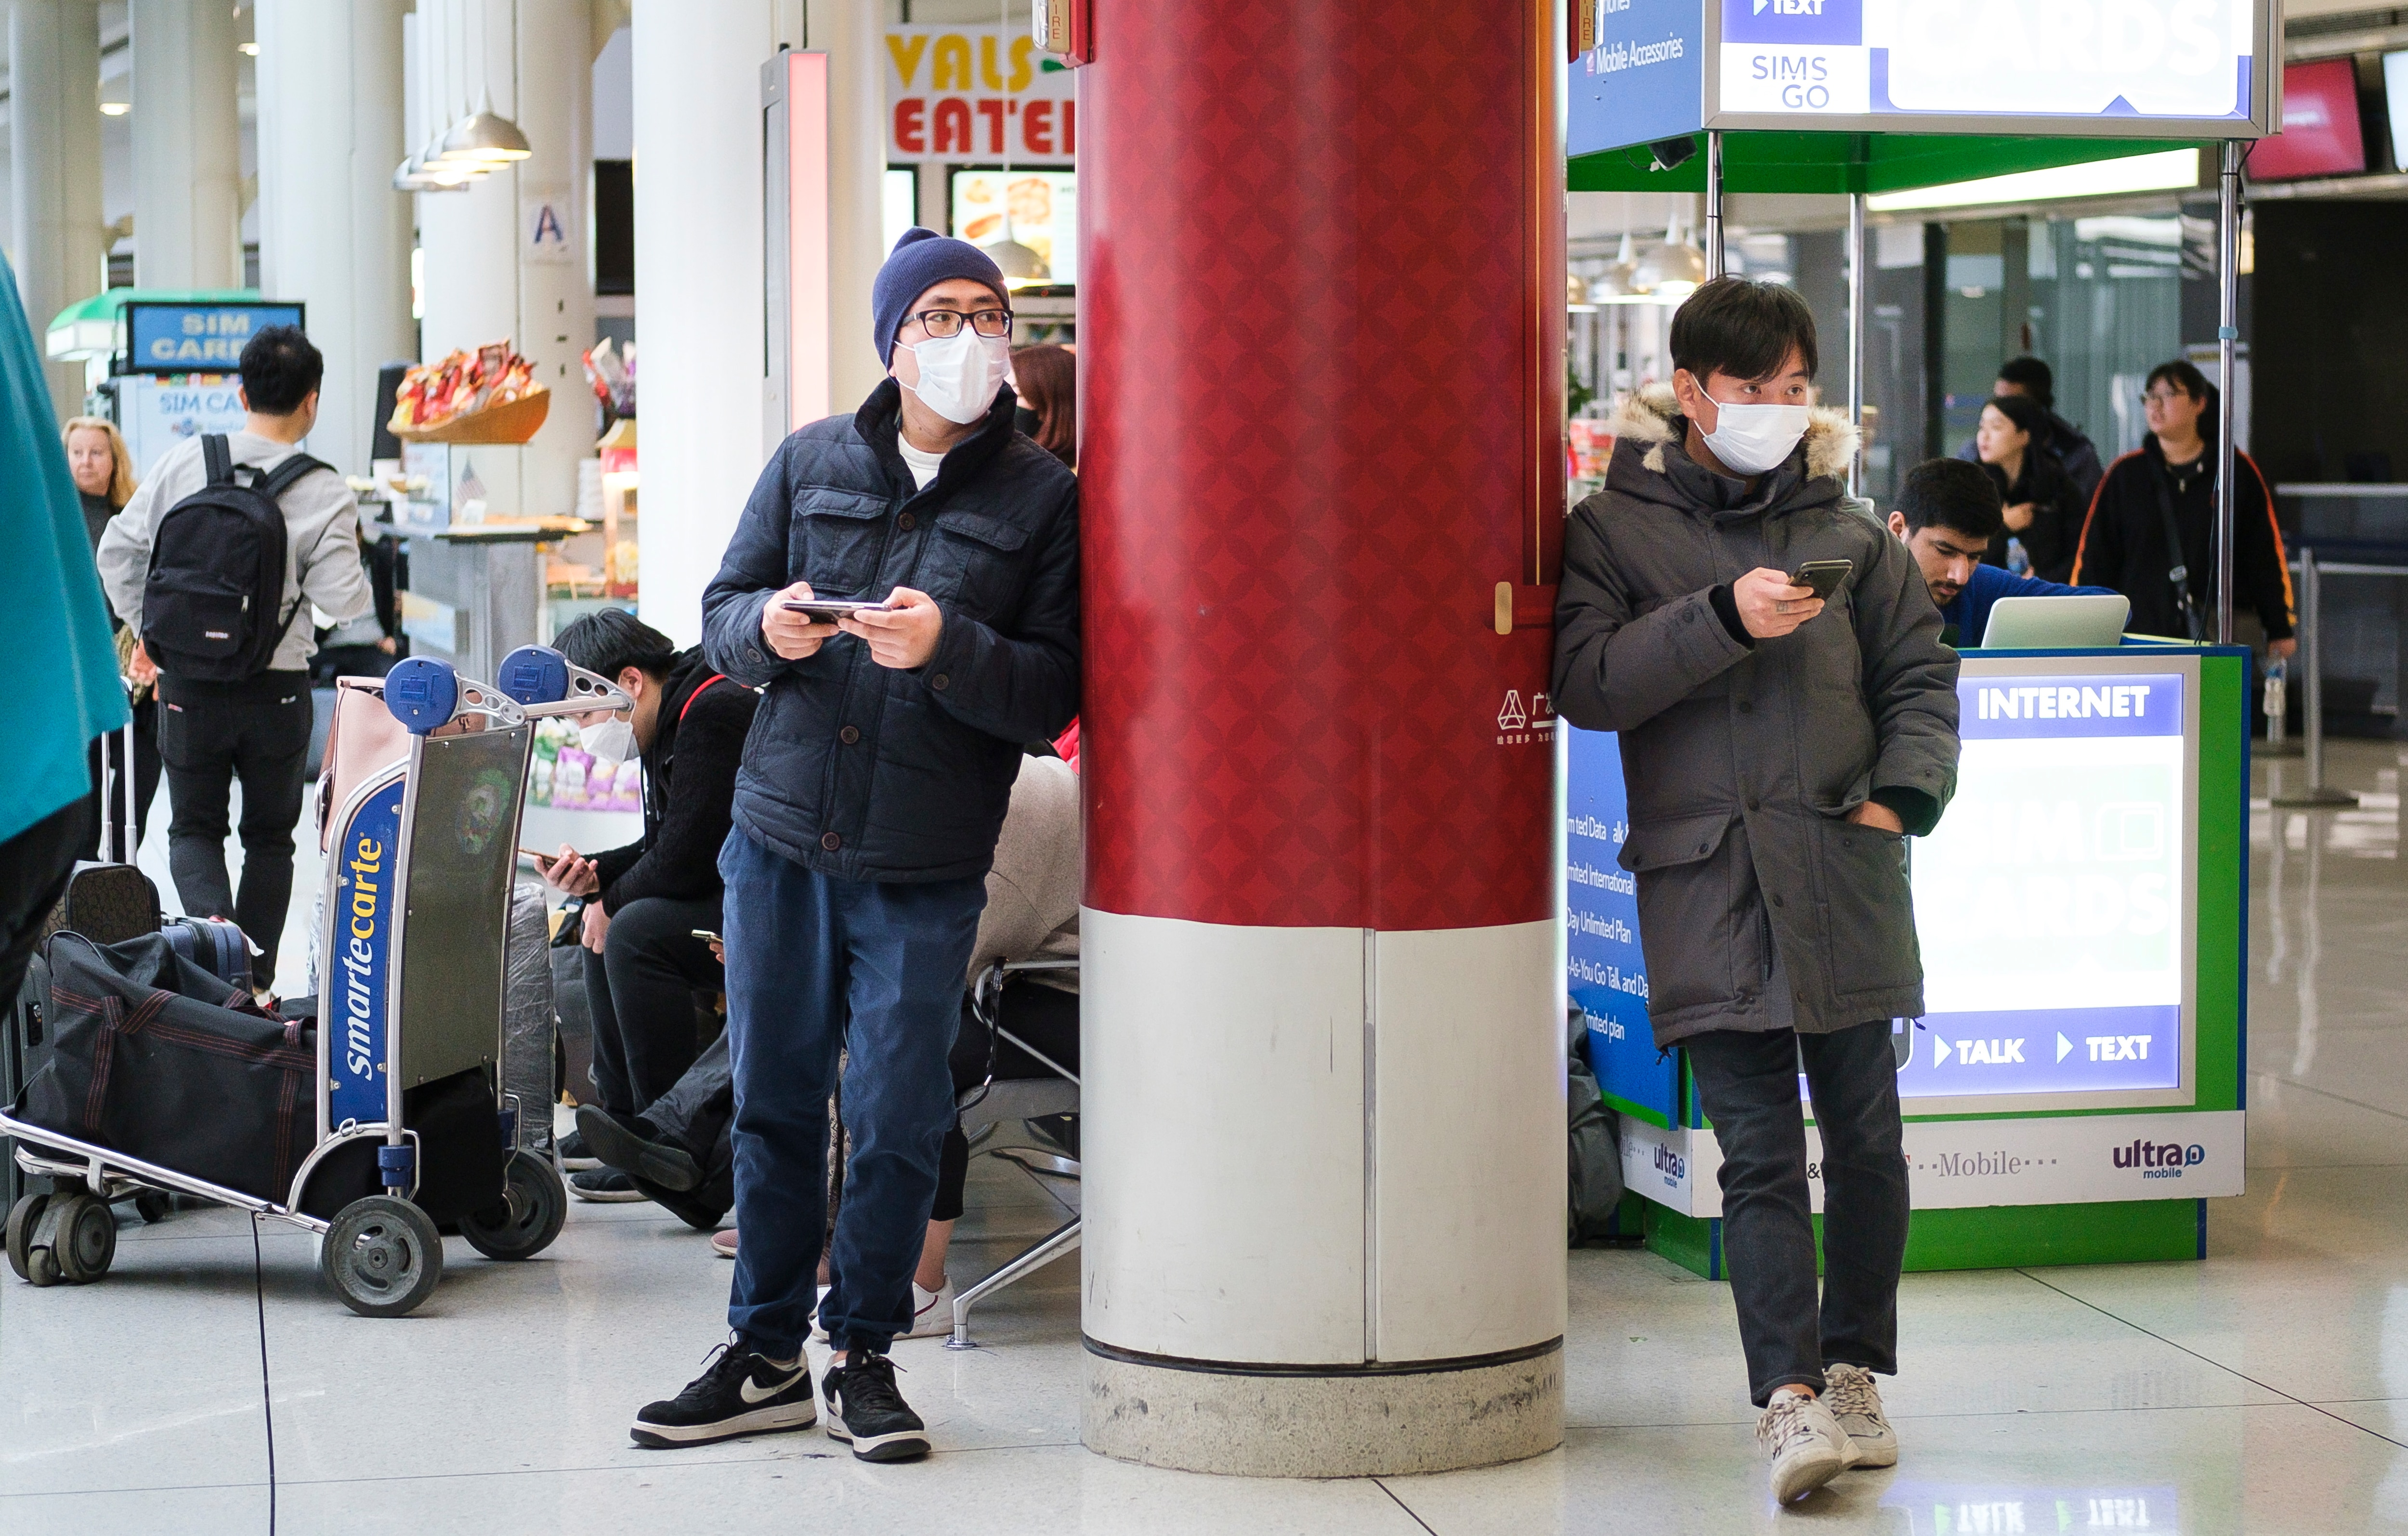 People wearing medical masks wait for arriving passengers at John F. Kennedy international airport in New York.